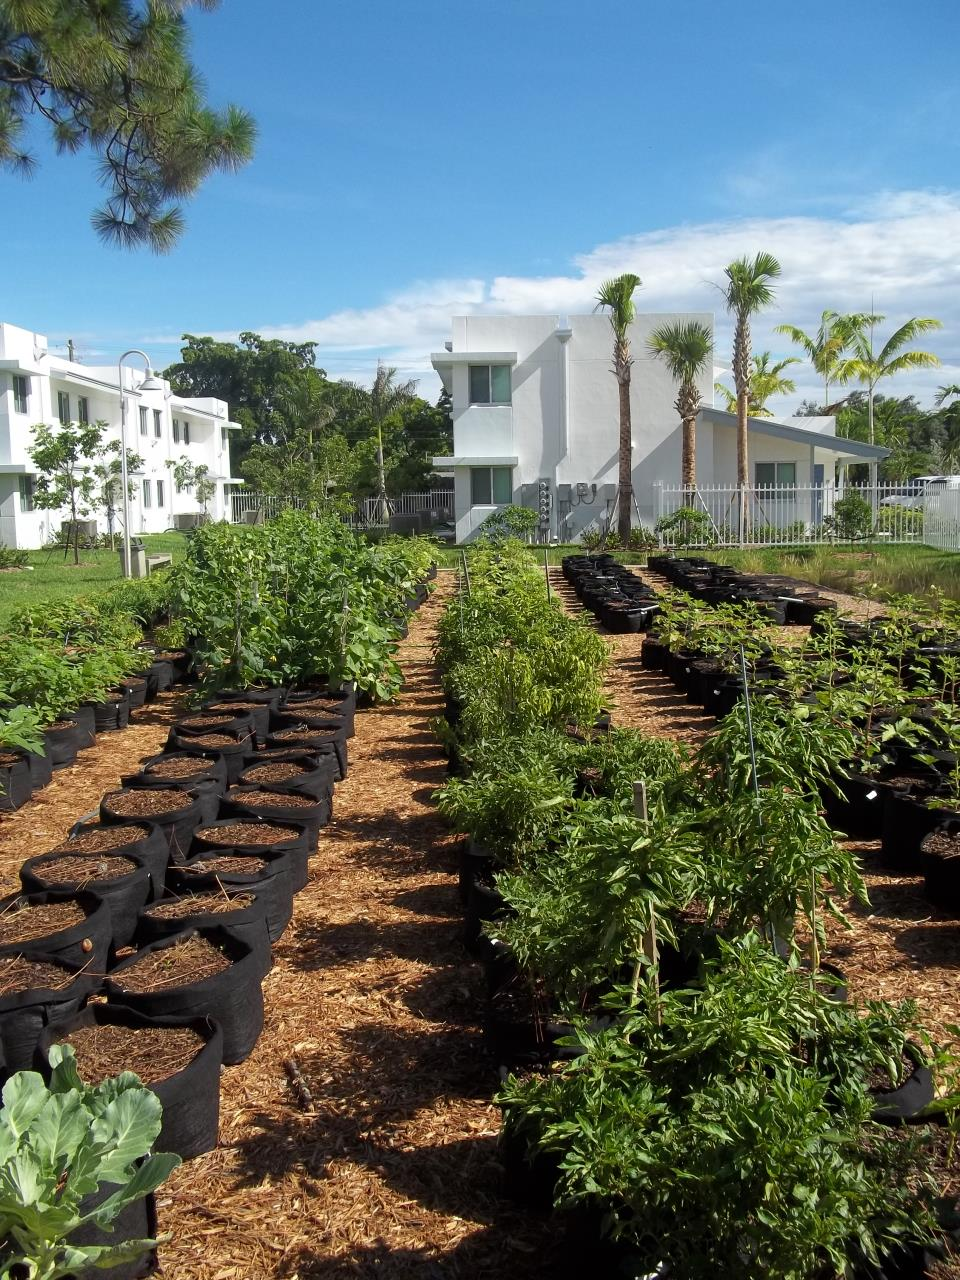 City of fort lauderdale fl urban farming and community - Garden city ny distribution center ...